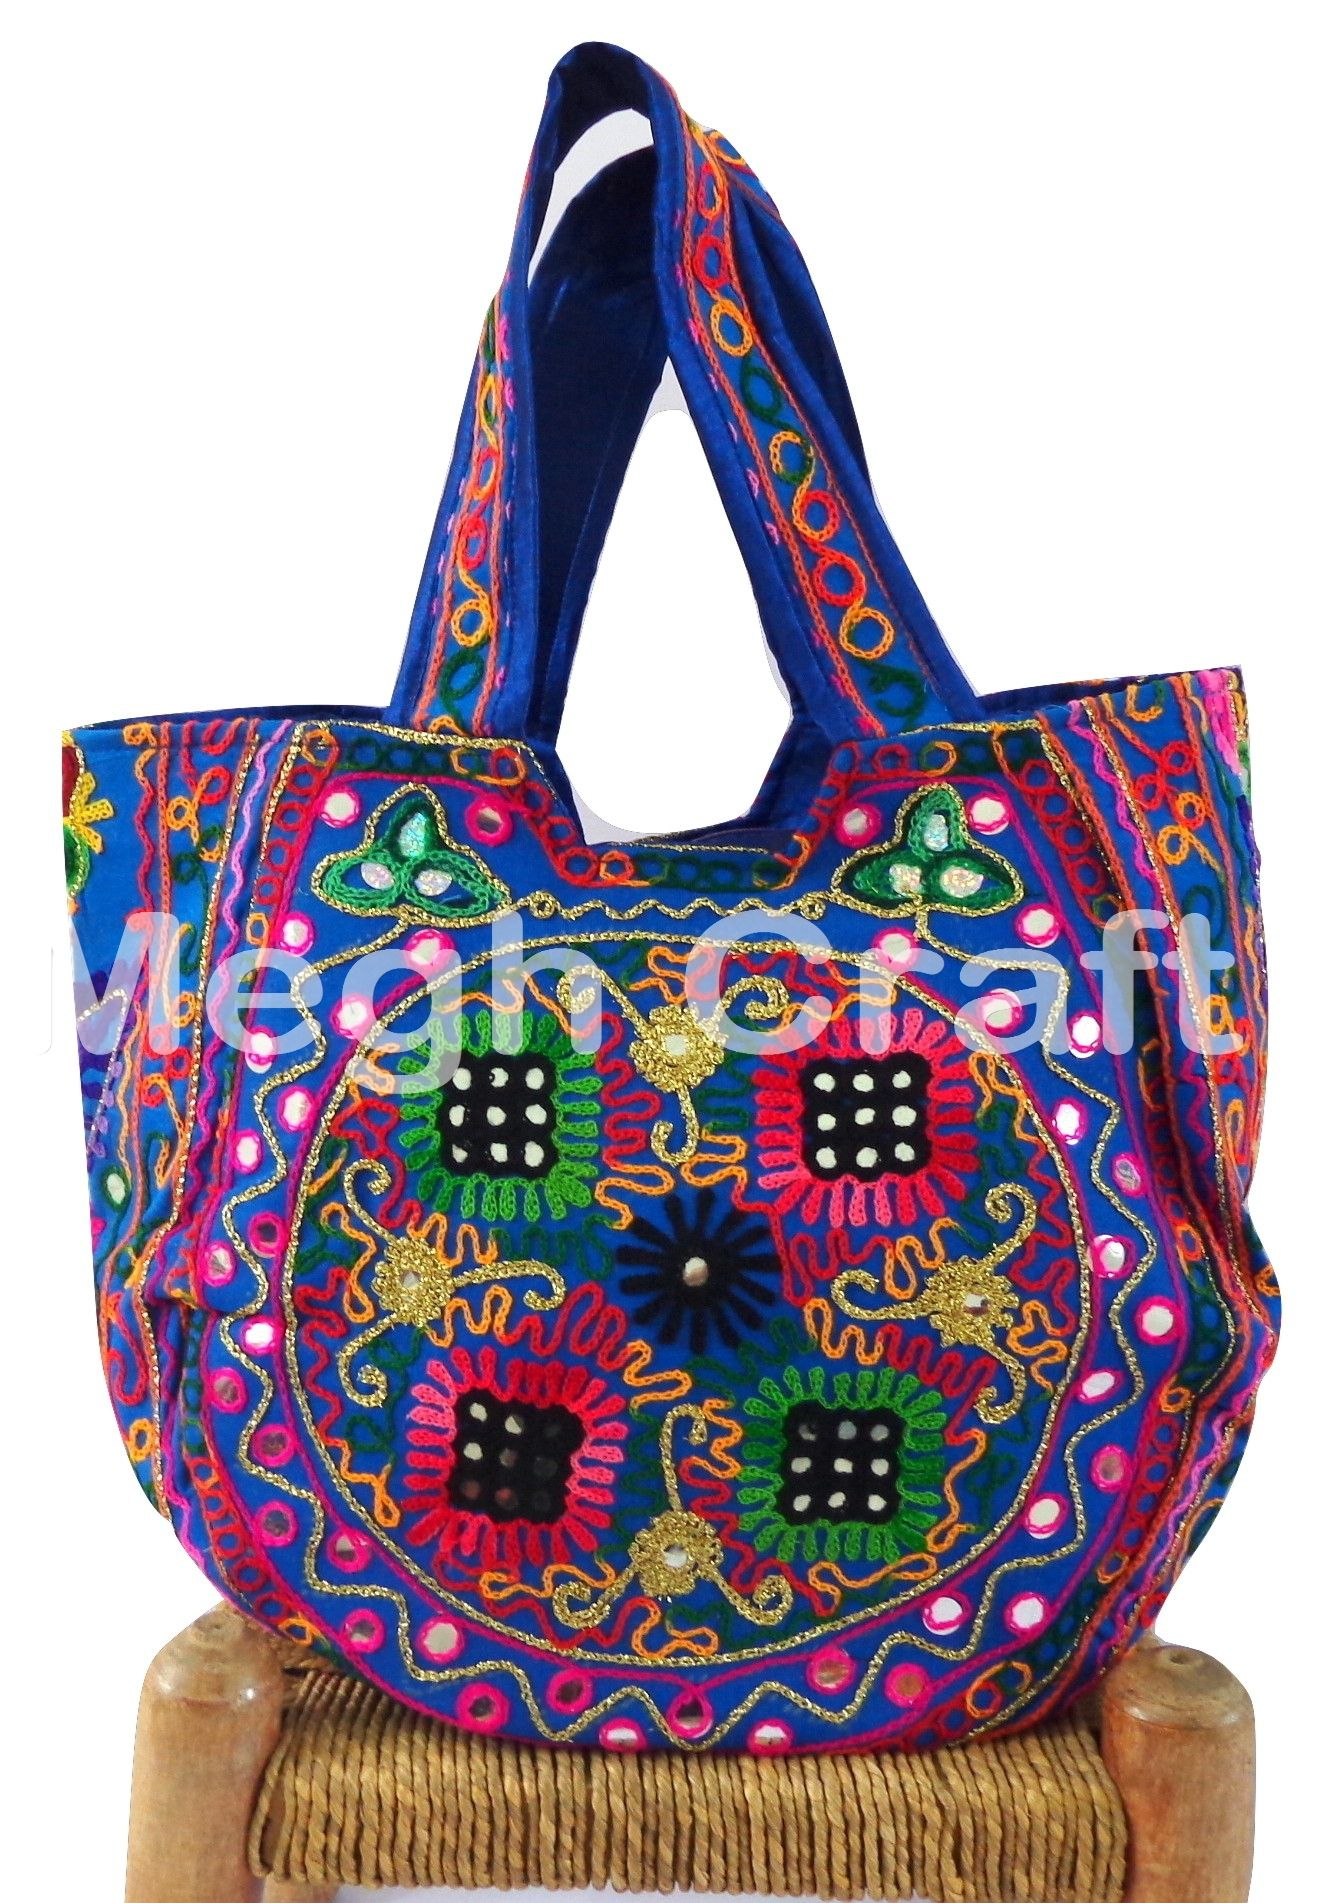 7b63dd7965 Banjara Kutch Mirror Work HandBags   Craftnfashion HamdmadeHandBags KutchEmbroideryHandBag BanjaraHandBag MirrorWorkHandBag